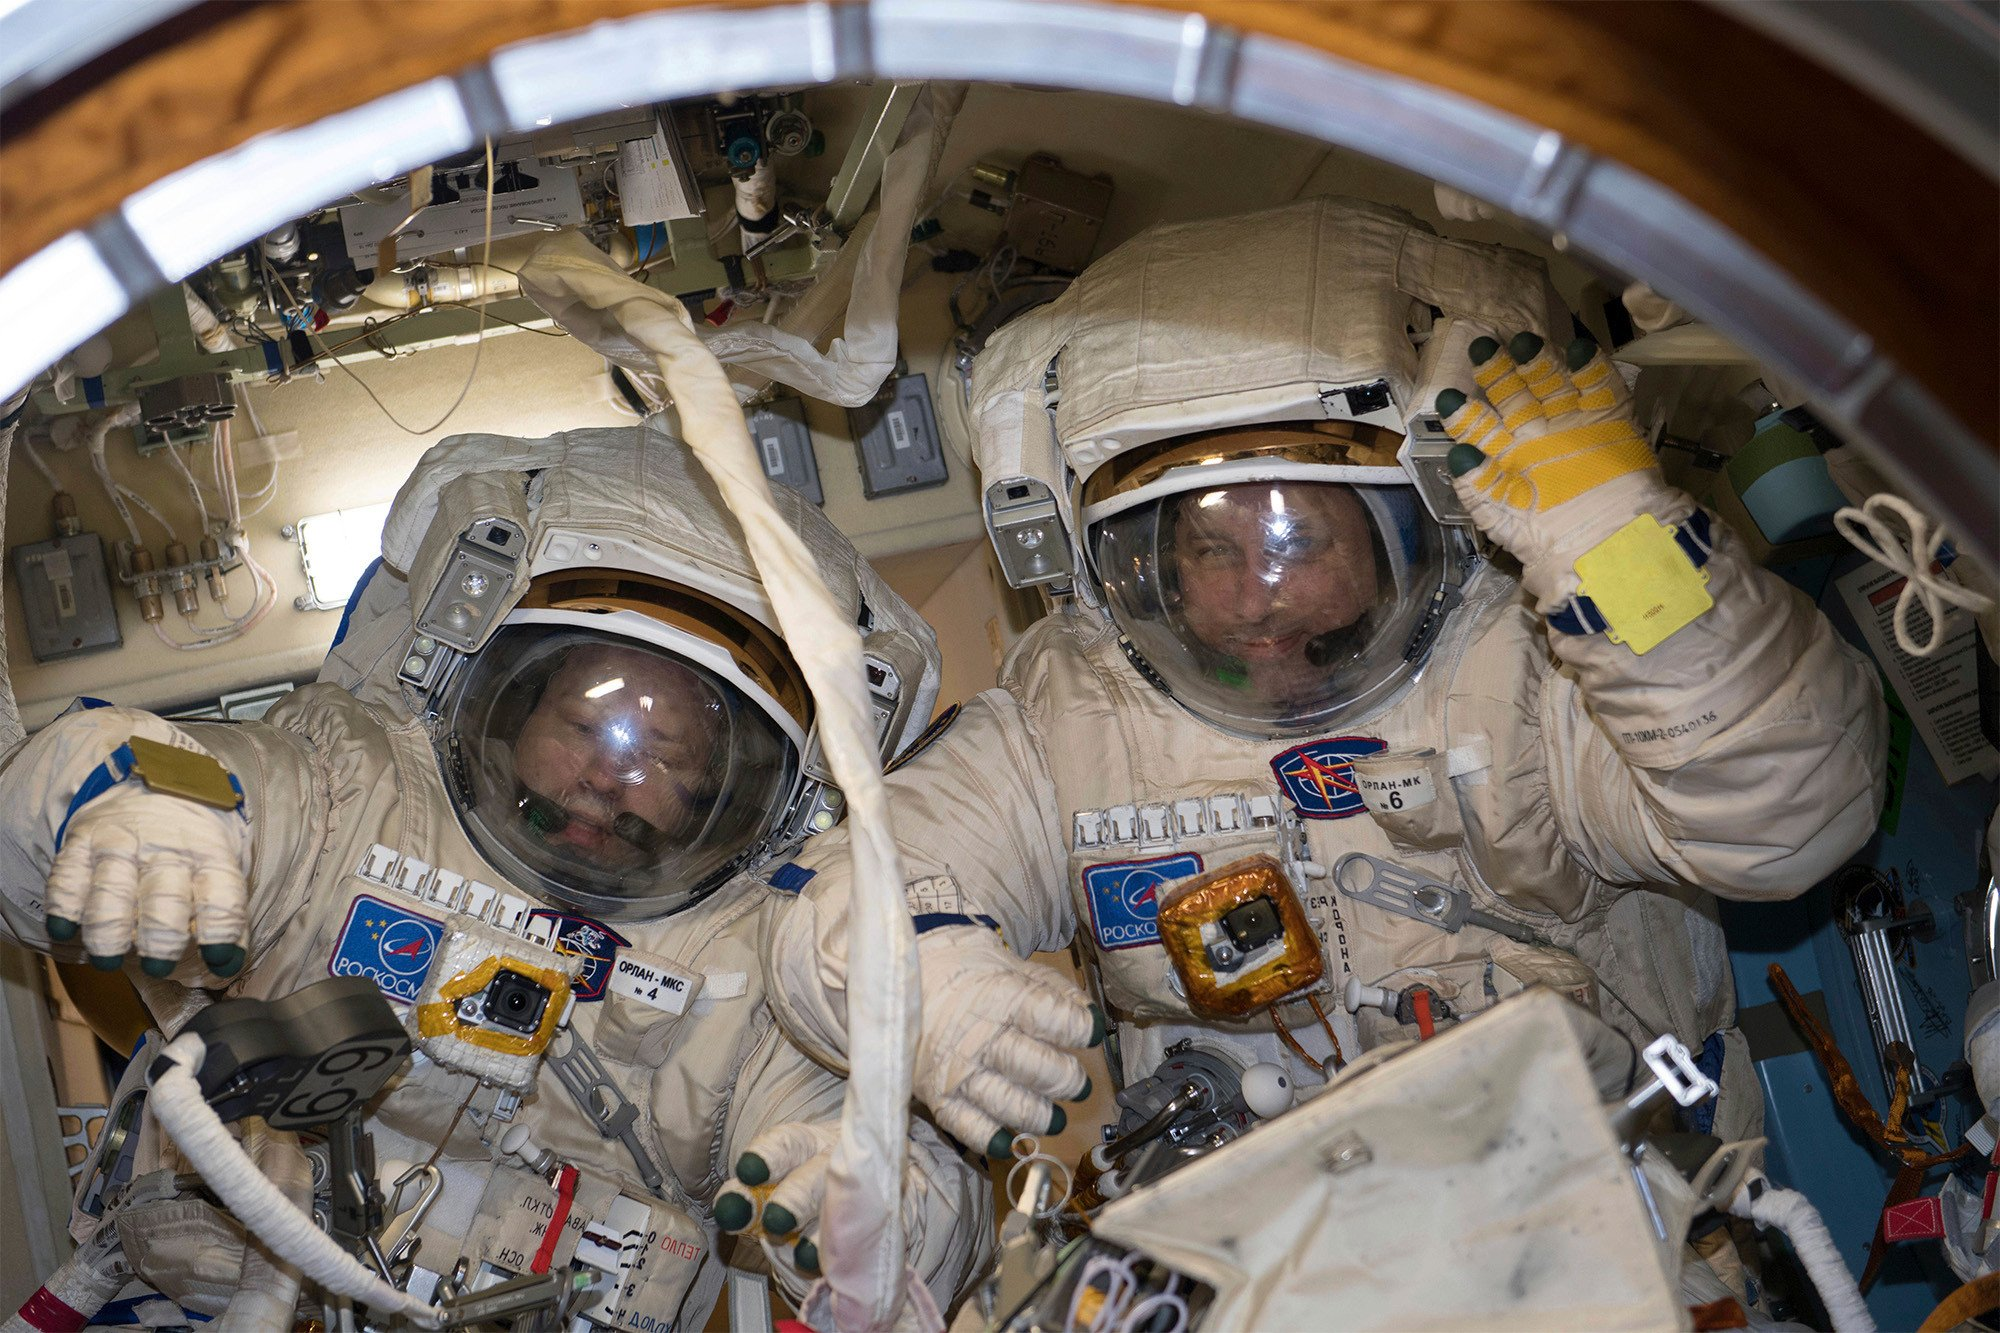 Russian astronauts screw up space station antenna